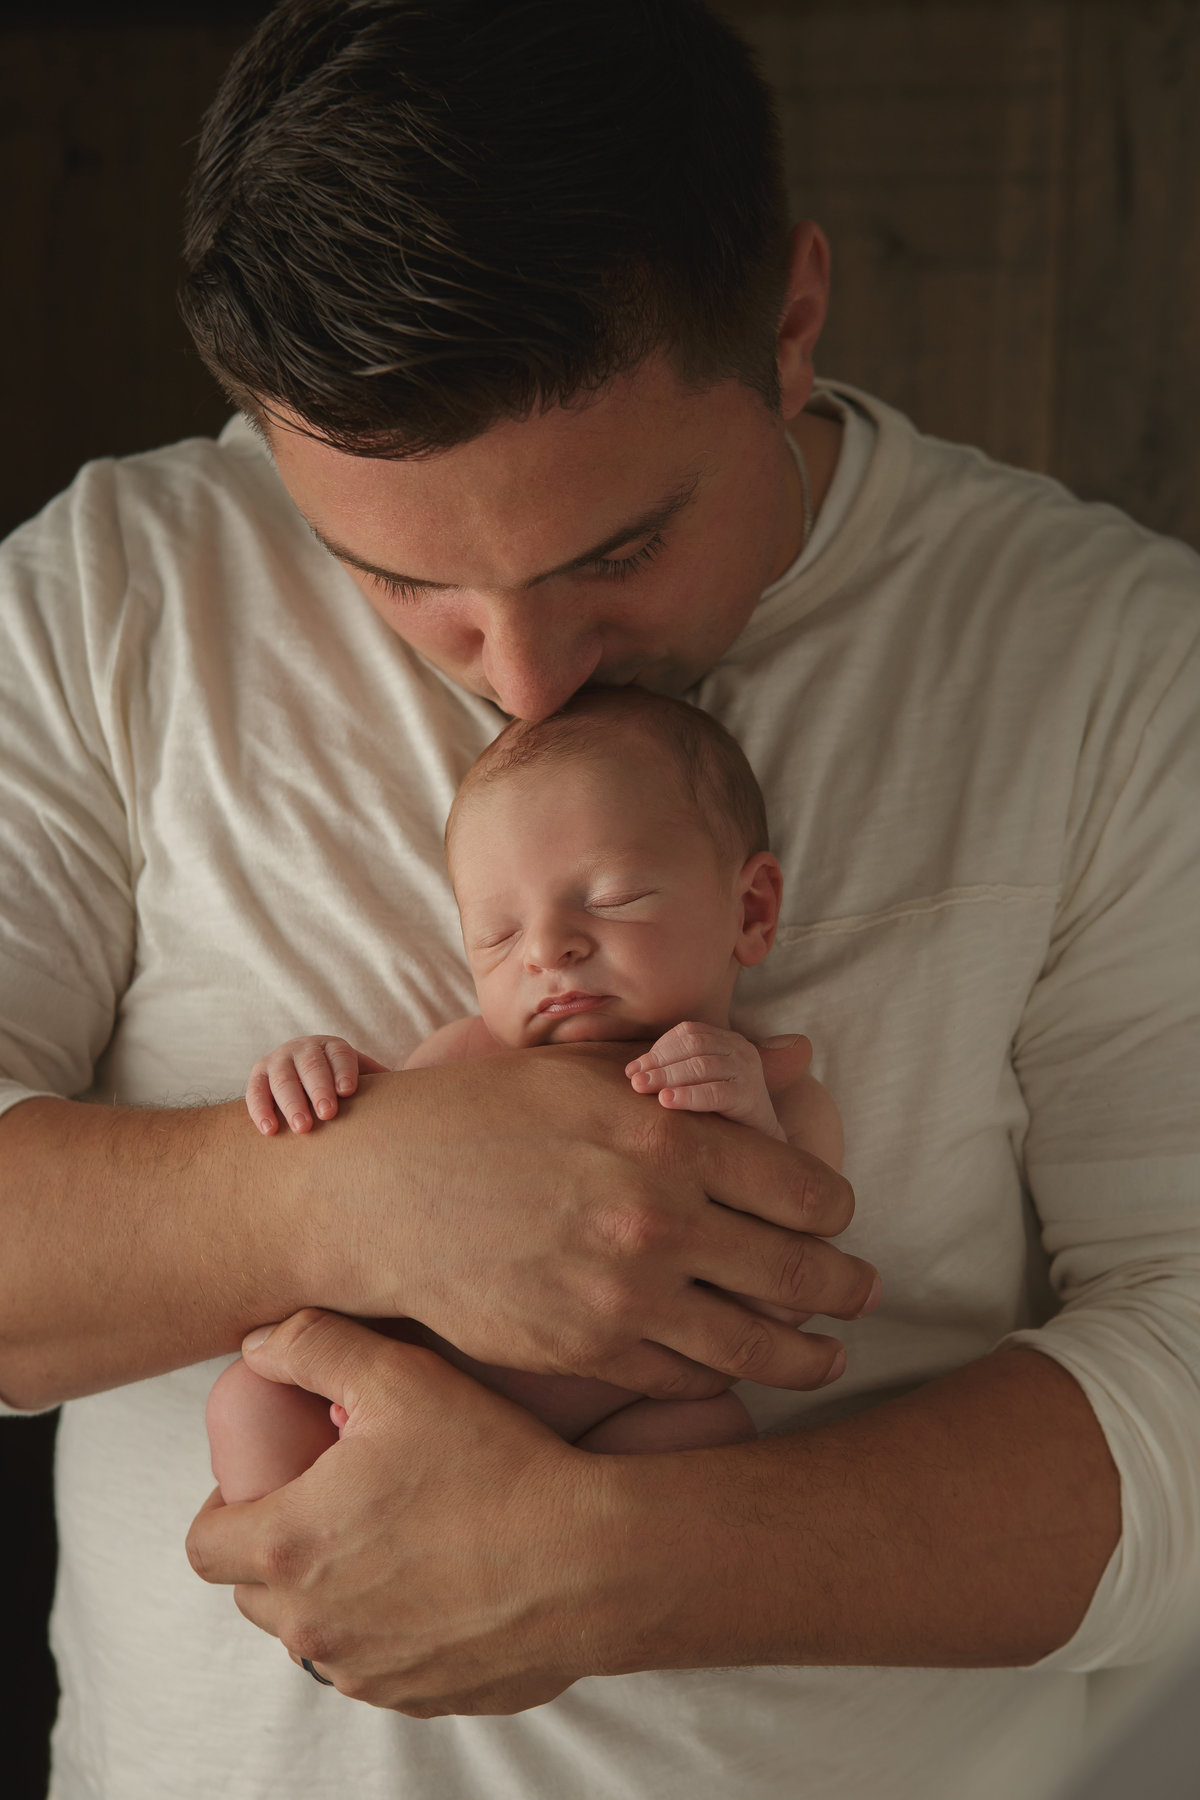 new dad kissing his newborn baby by Hudson Valley professional photographer in Cornwall NY photo studio